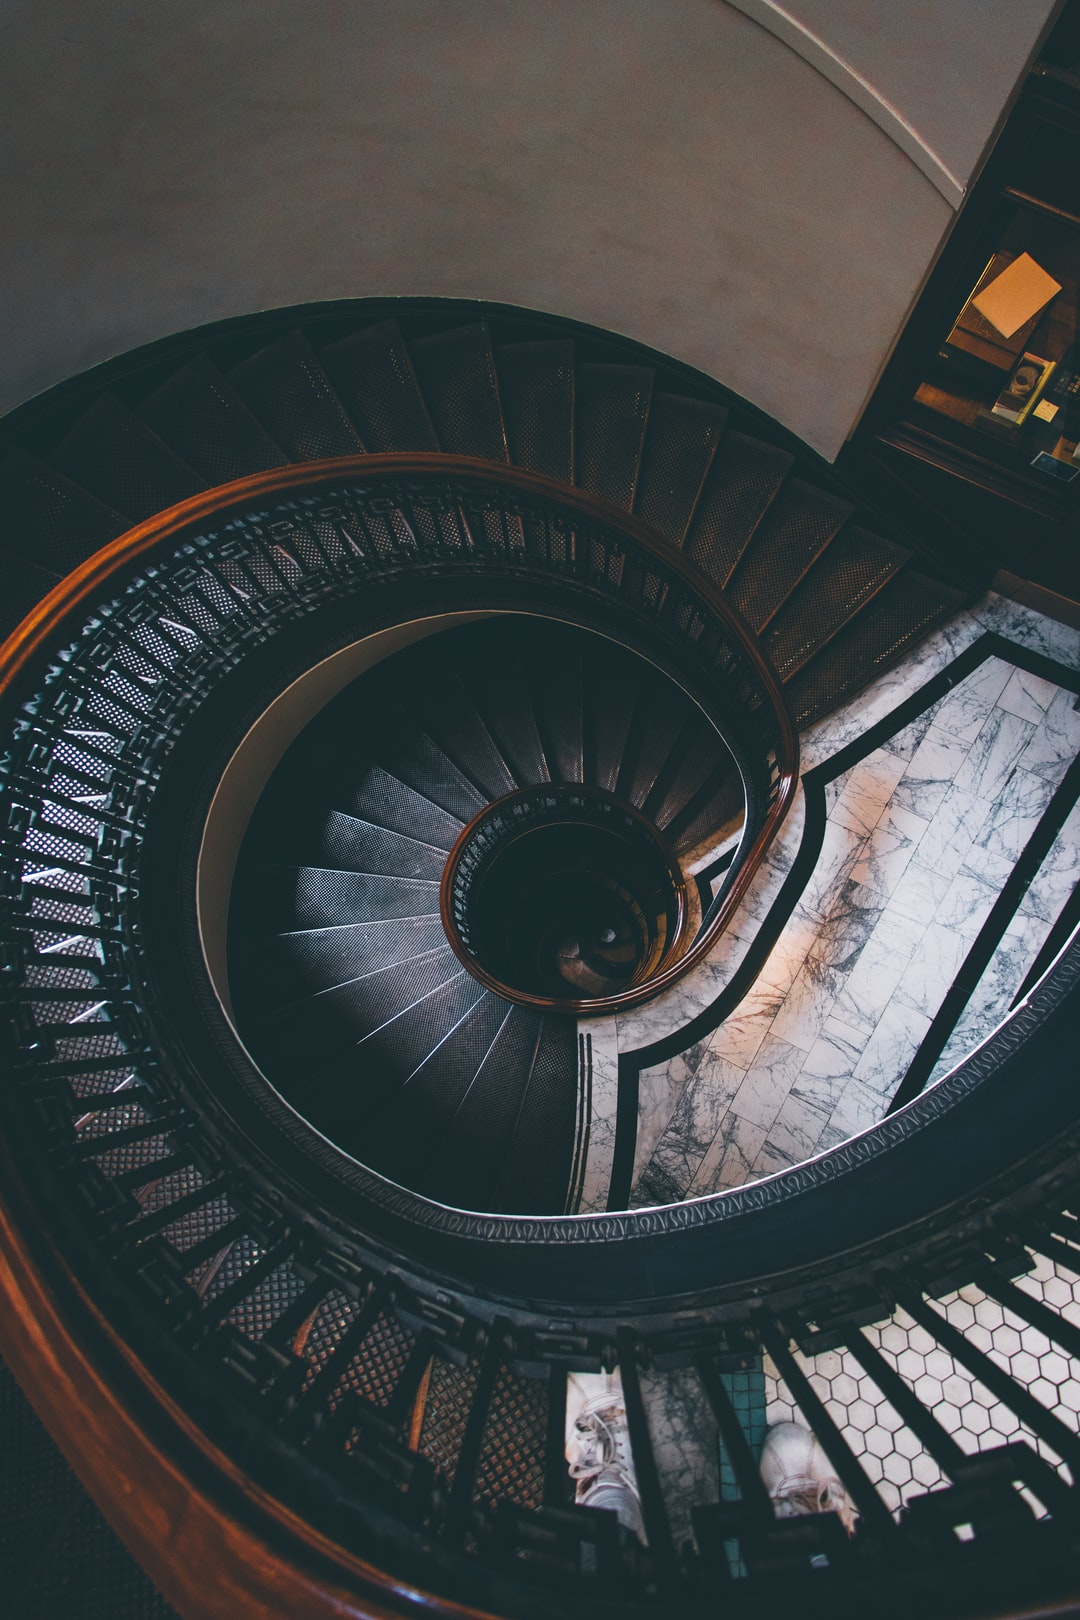 Spiral of Stairs